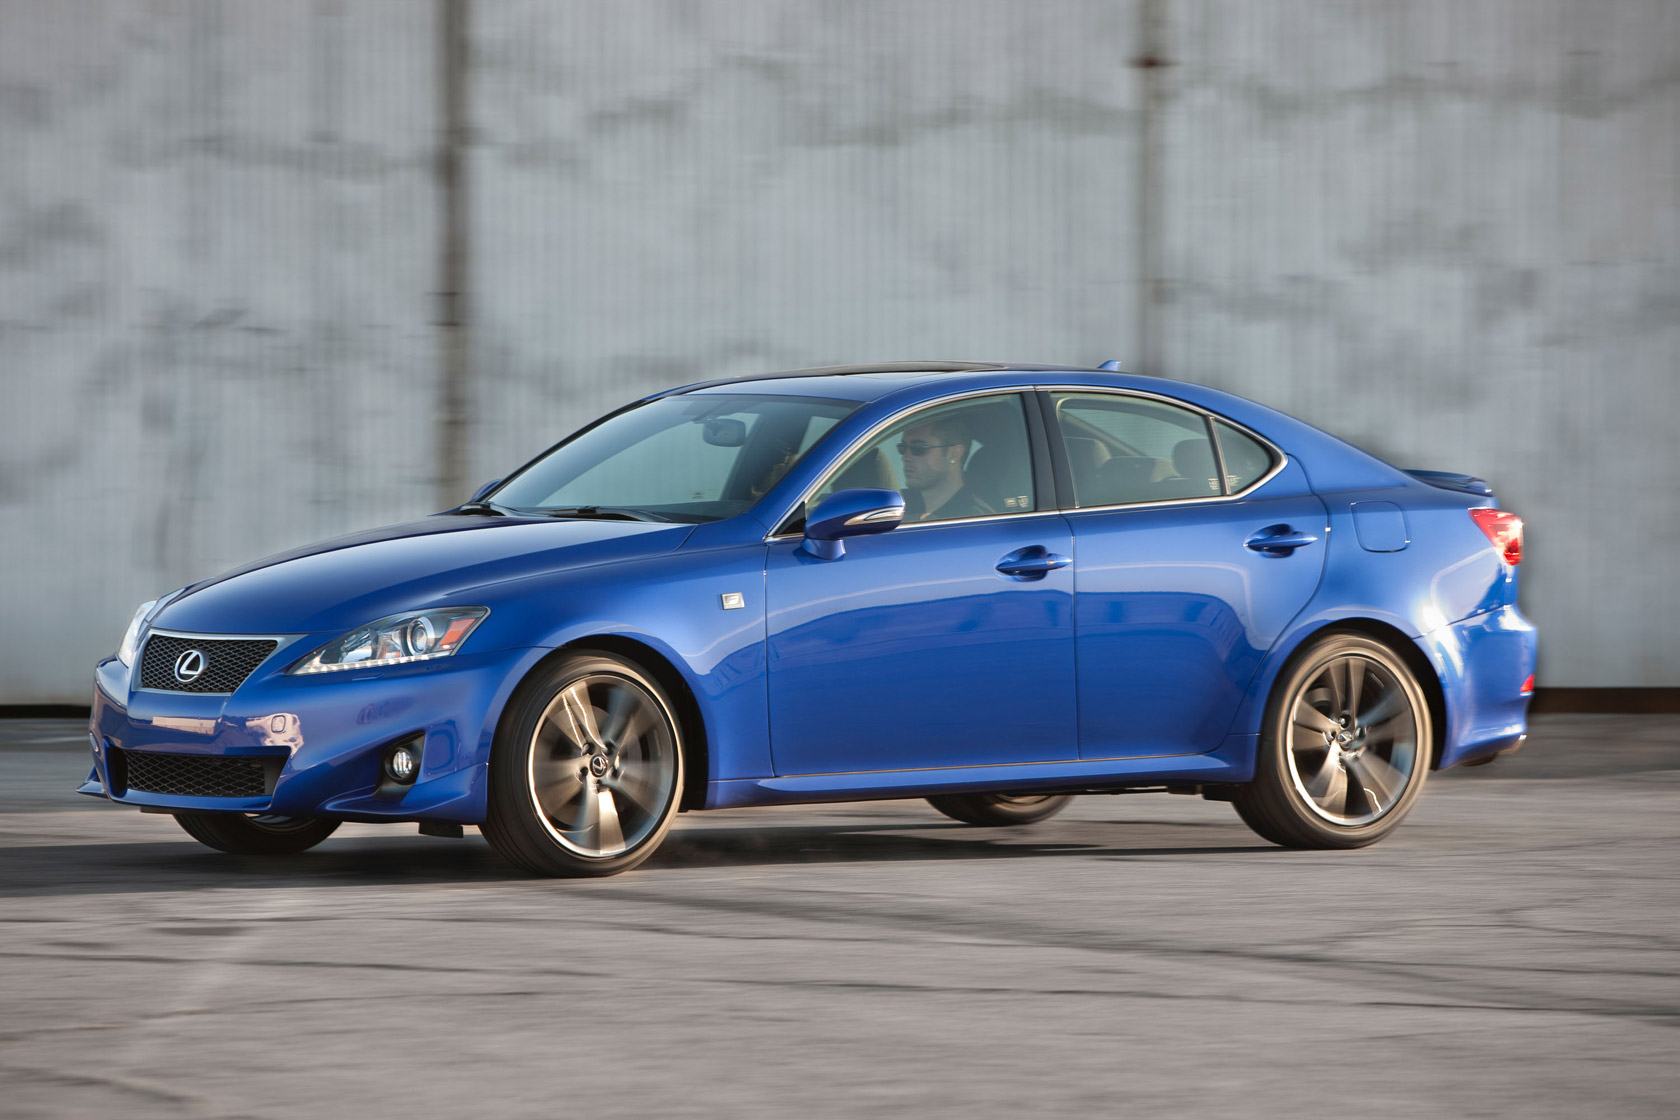 2011 lexus is pics and specs f sport package opt awd is. Black Bedroom Furniture Sets. Home Design Ideas